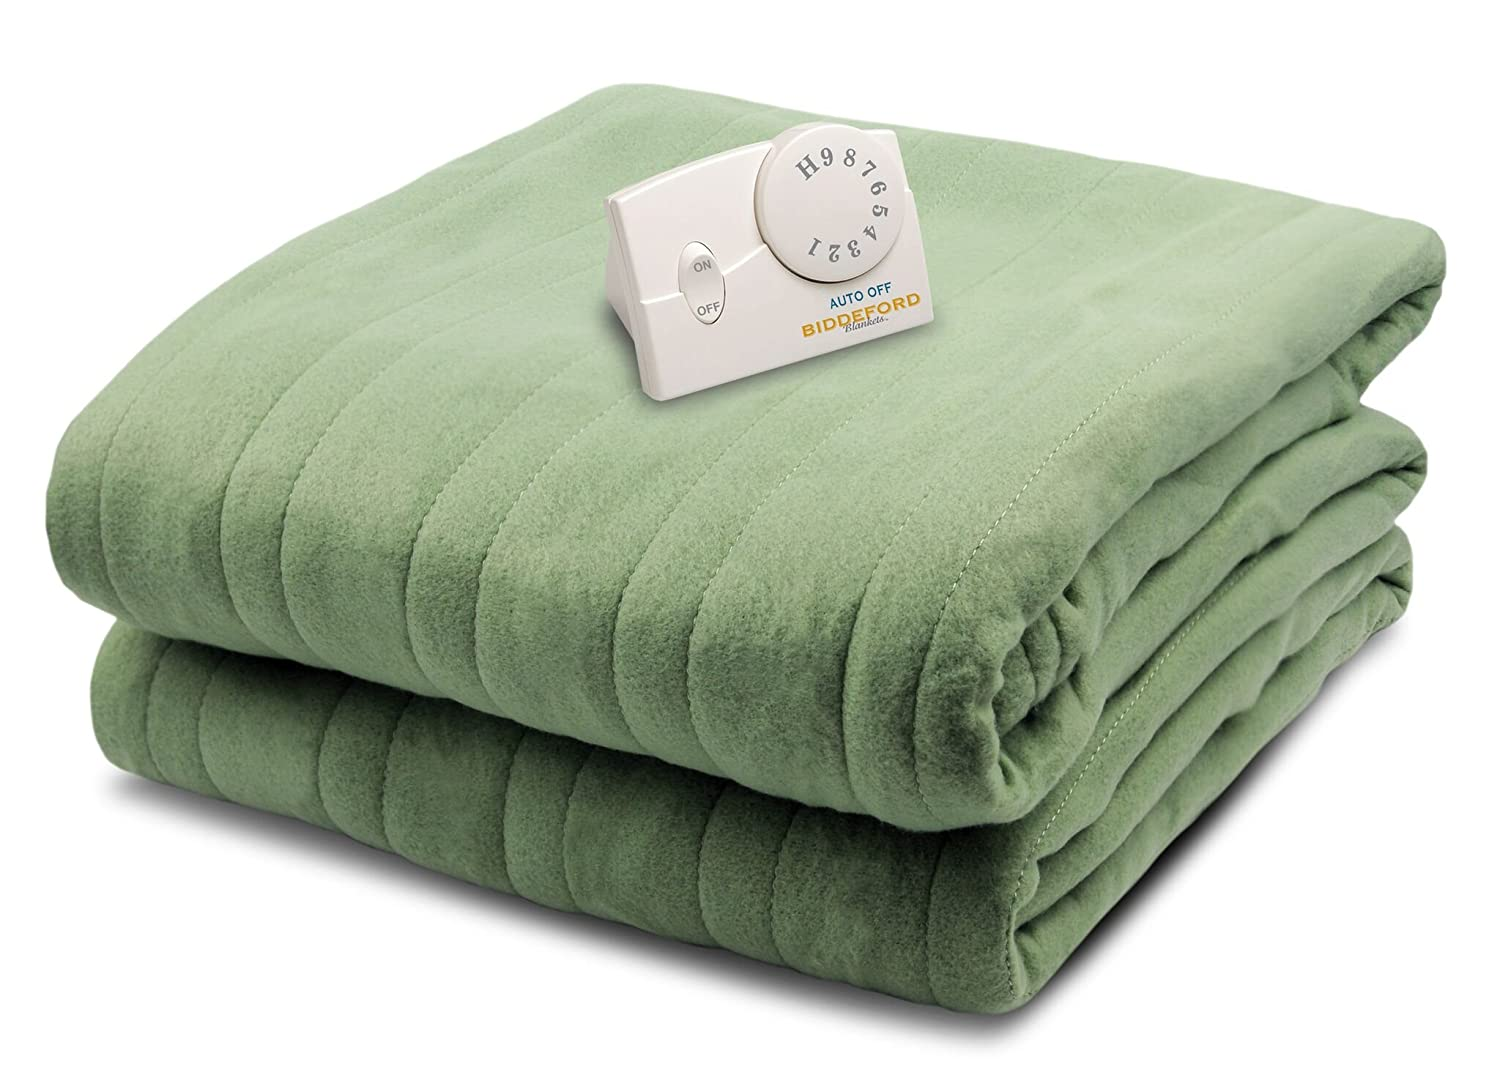 Biddeford 1000-903929-63 Comfort Knit Electric Heated Blanket Image